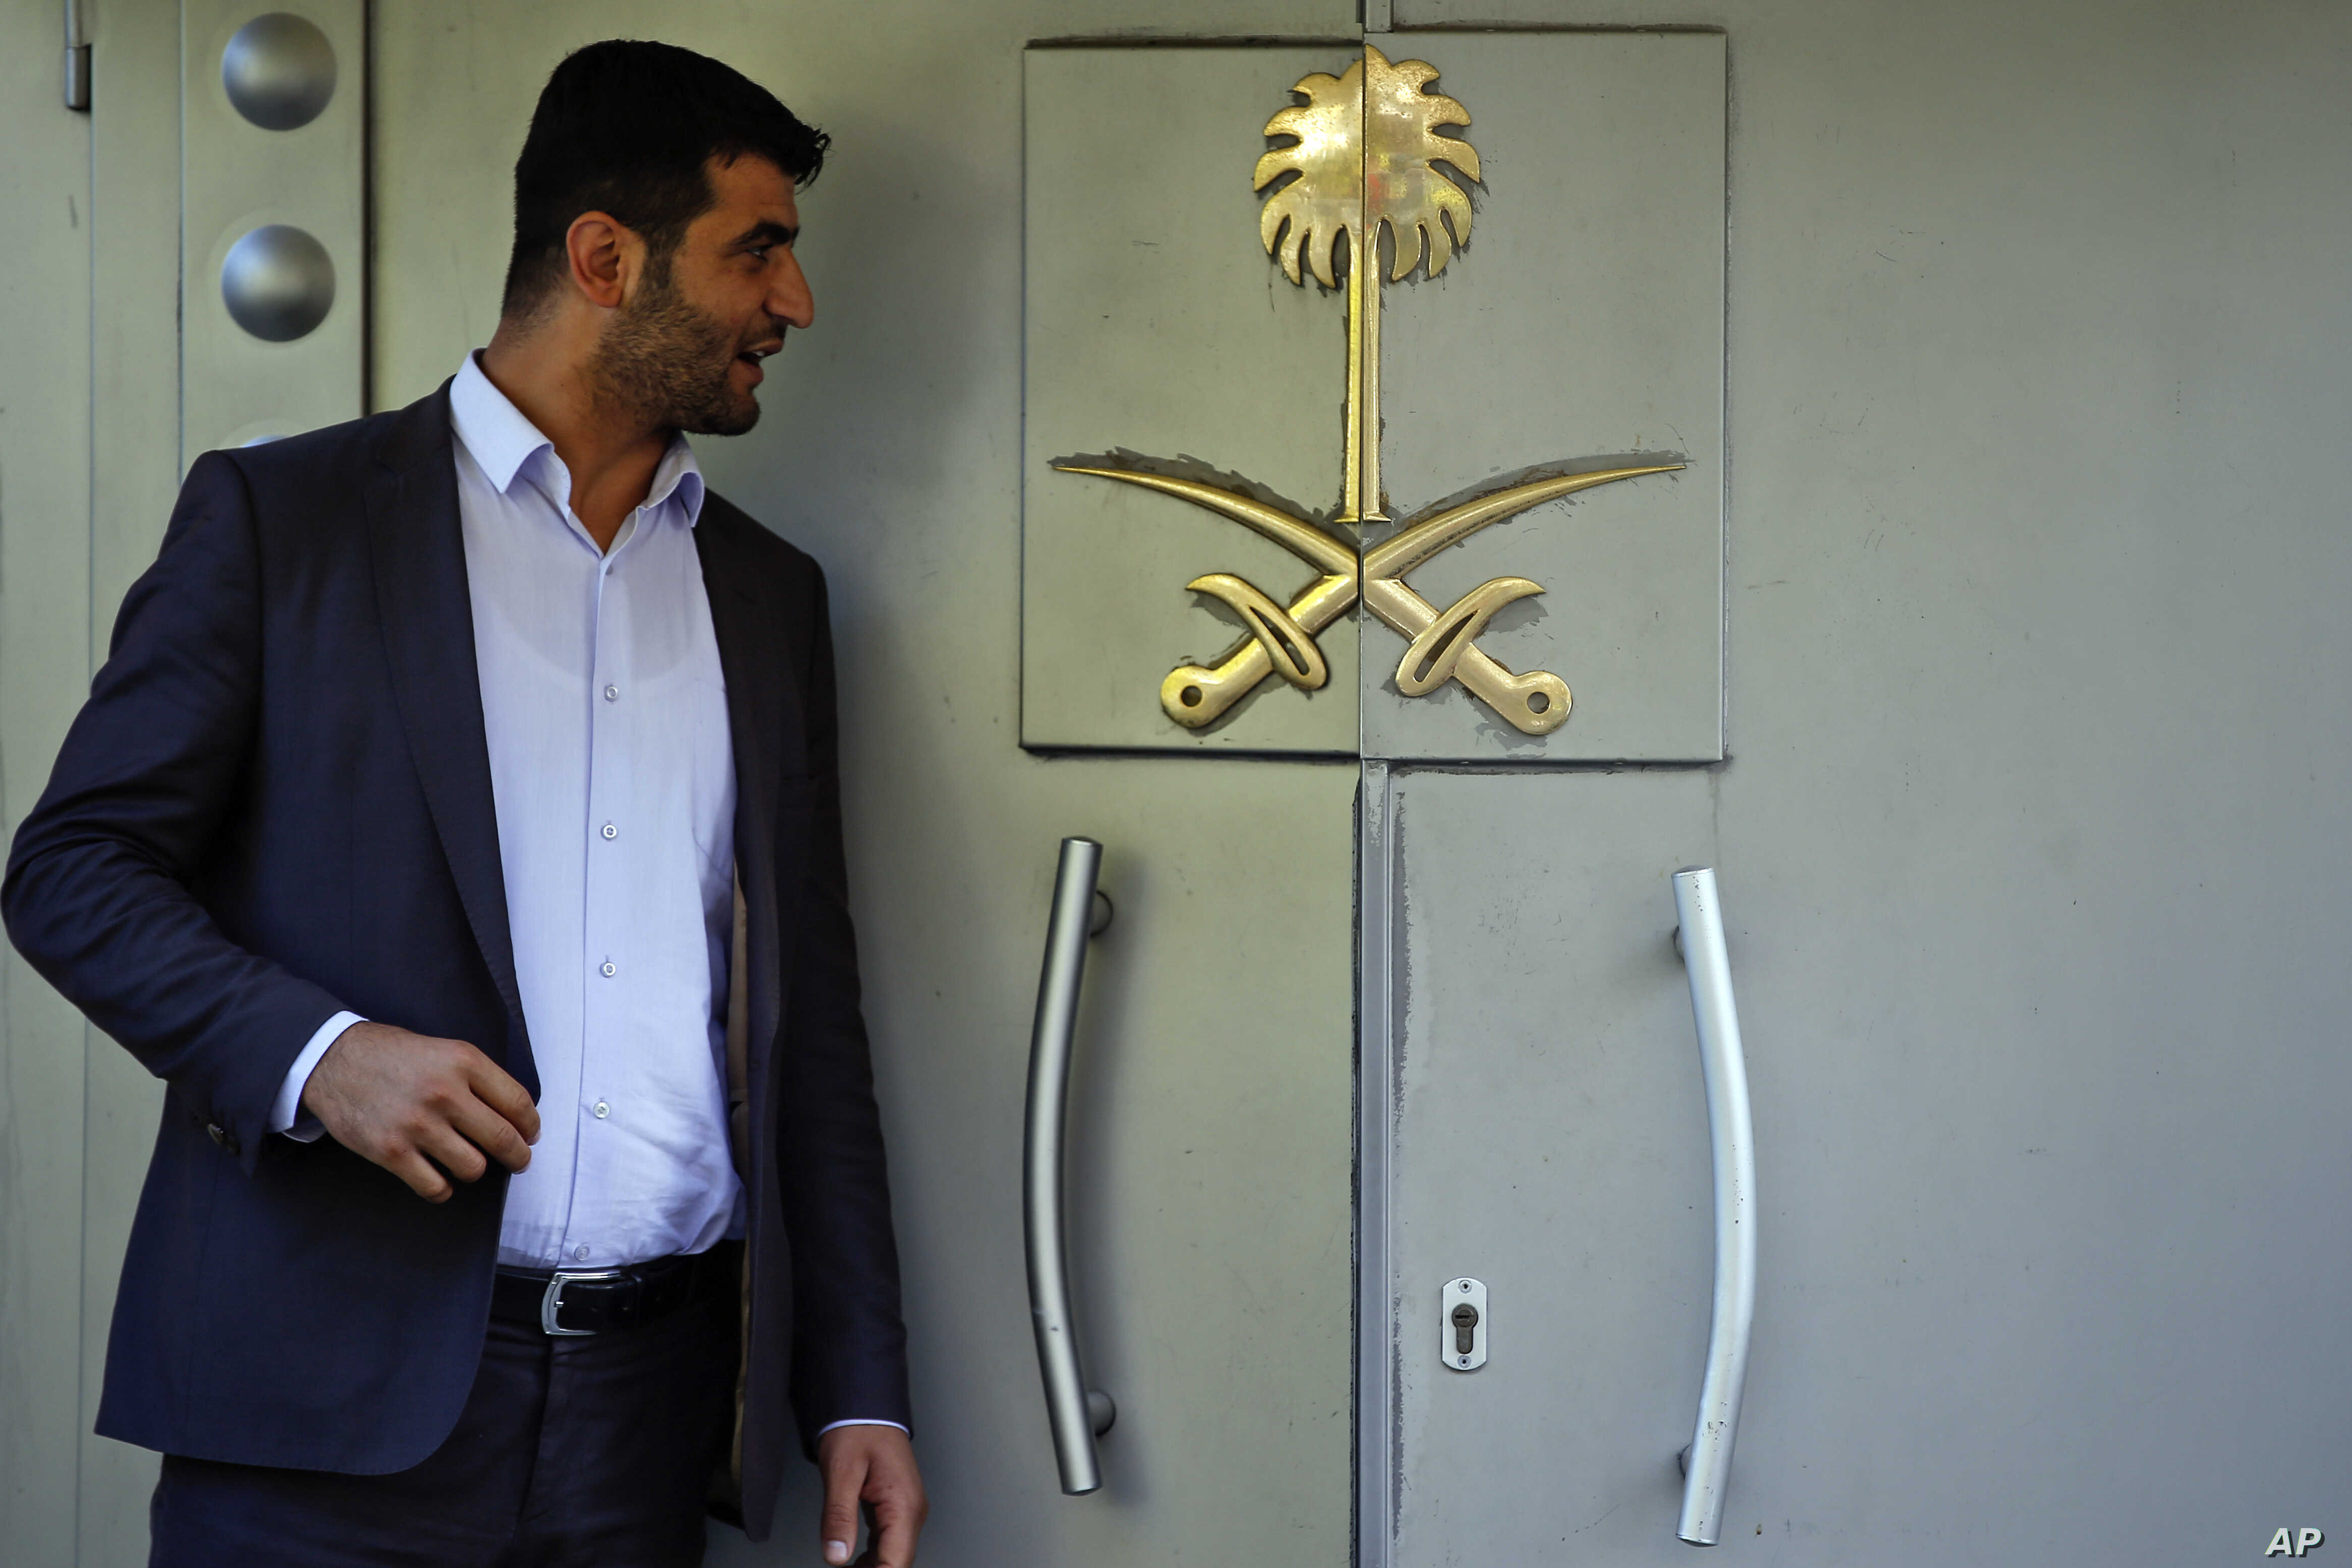 """Officials leave Saudi Arabia consulate in Istanbul, Oct. 7, 2018. A friend of a Saudi journalist who went missing in Istanbul says officials told him to """"make your funeral preparations"""" as the Washington Post contributor """"was killed"""" at the Saudi Con..."""